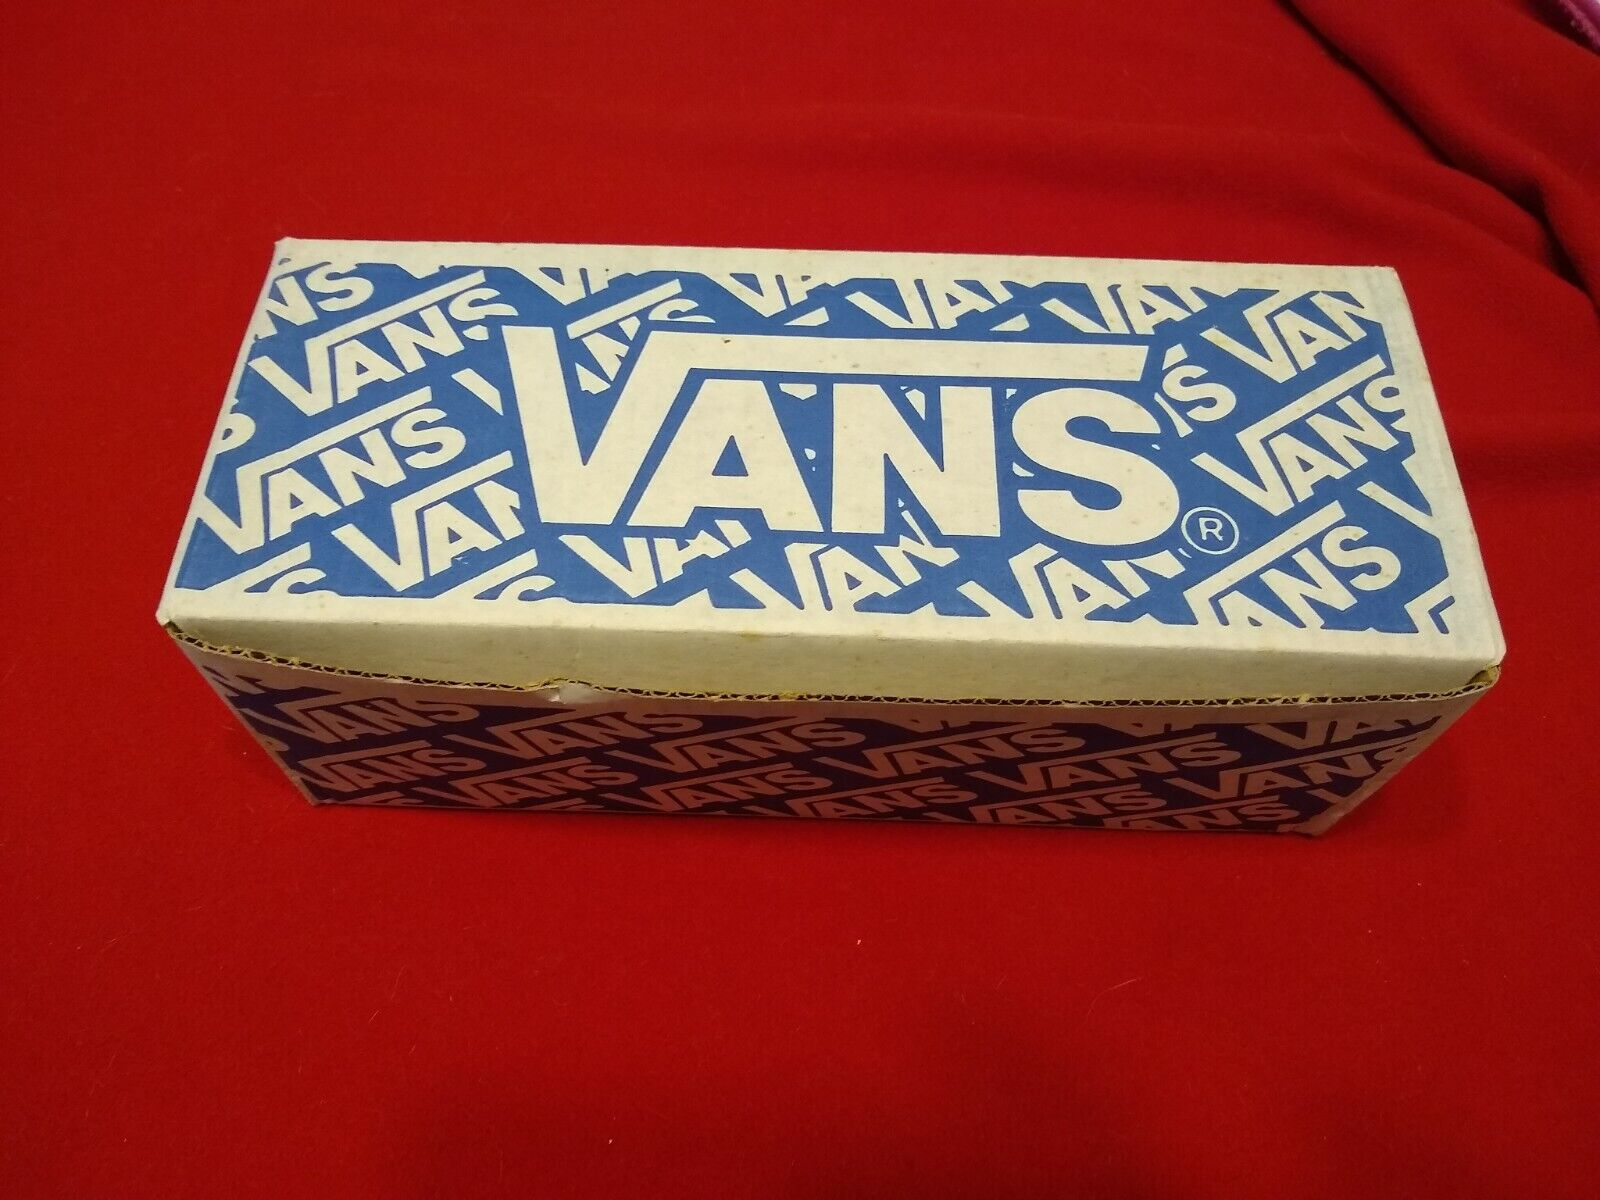 RARE vintage NOS vans shoes ERA 95 80s FLORAL PRINT 11 USA made